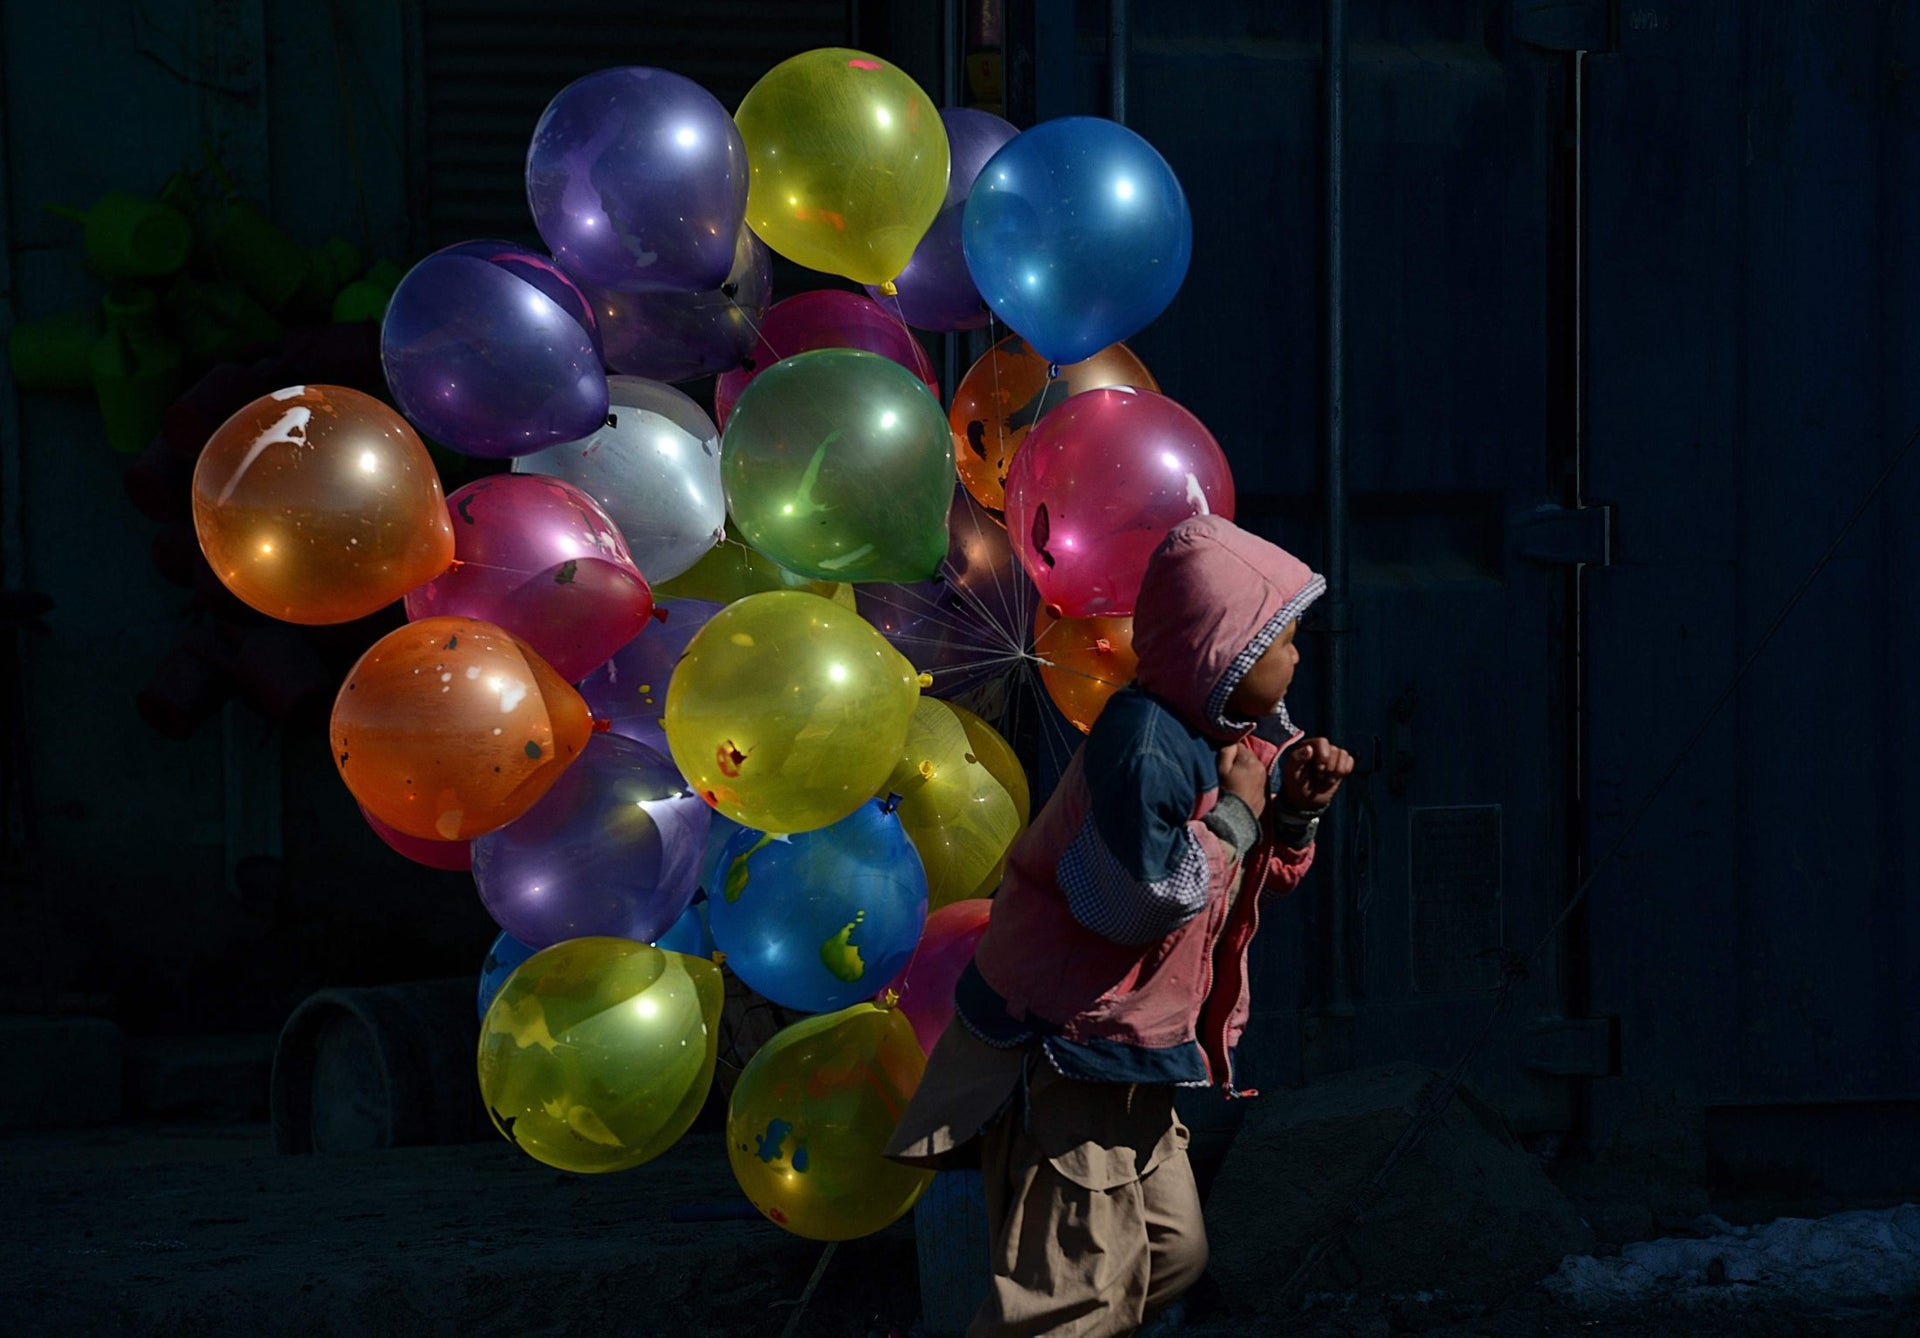 An Afghan boy walks with balloons for sale on a cold winter's day in Kabul, February 7, 2013.